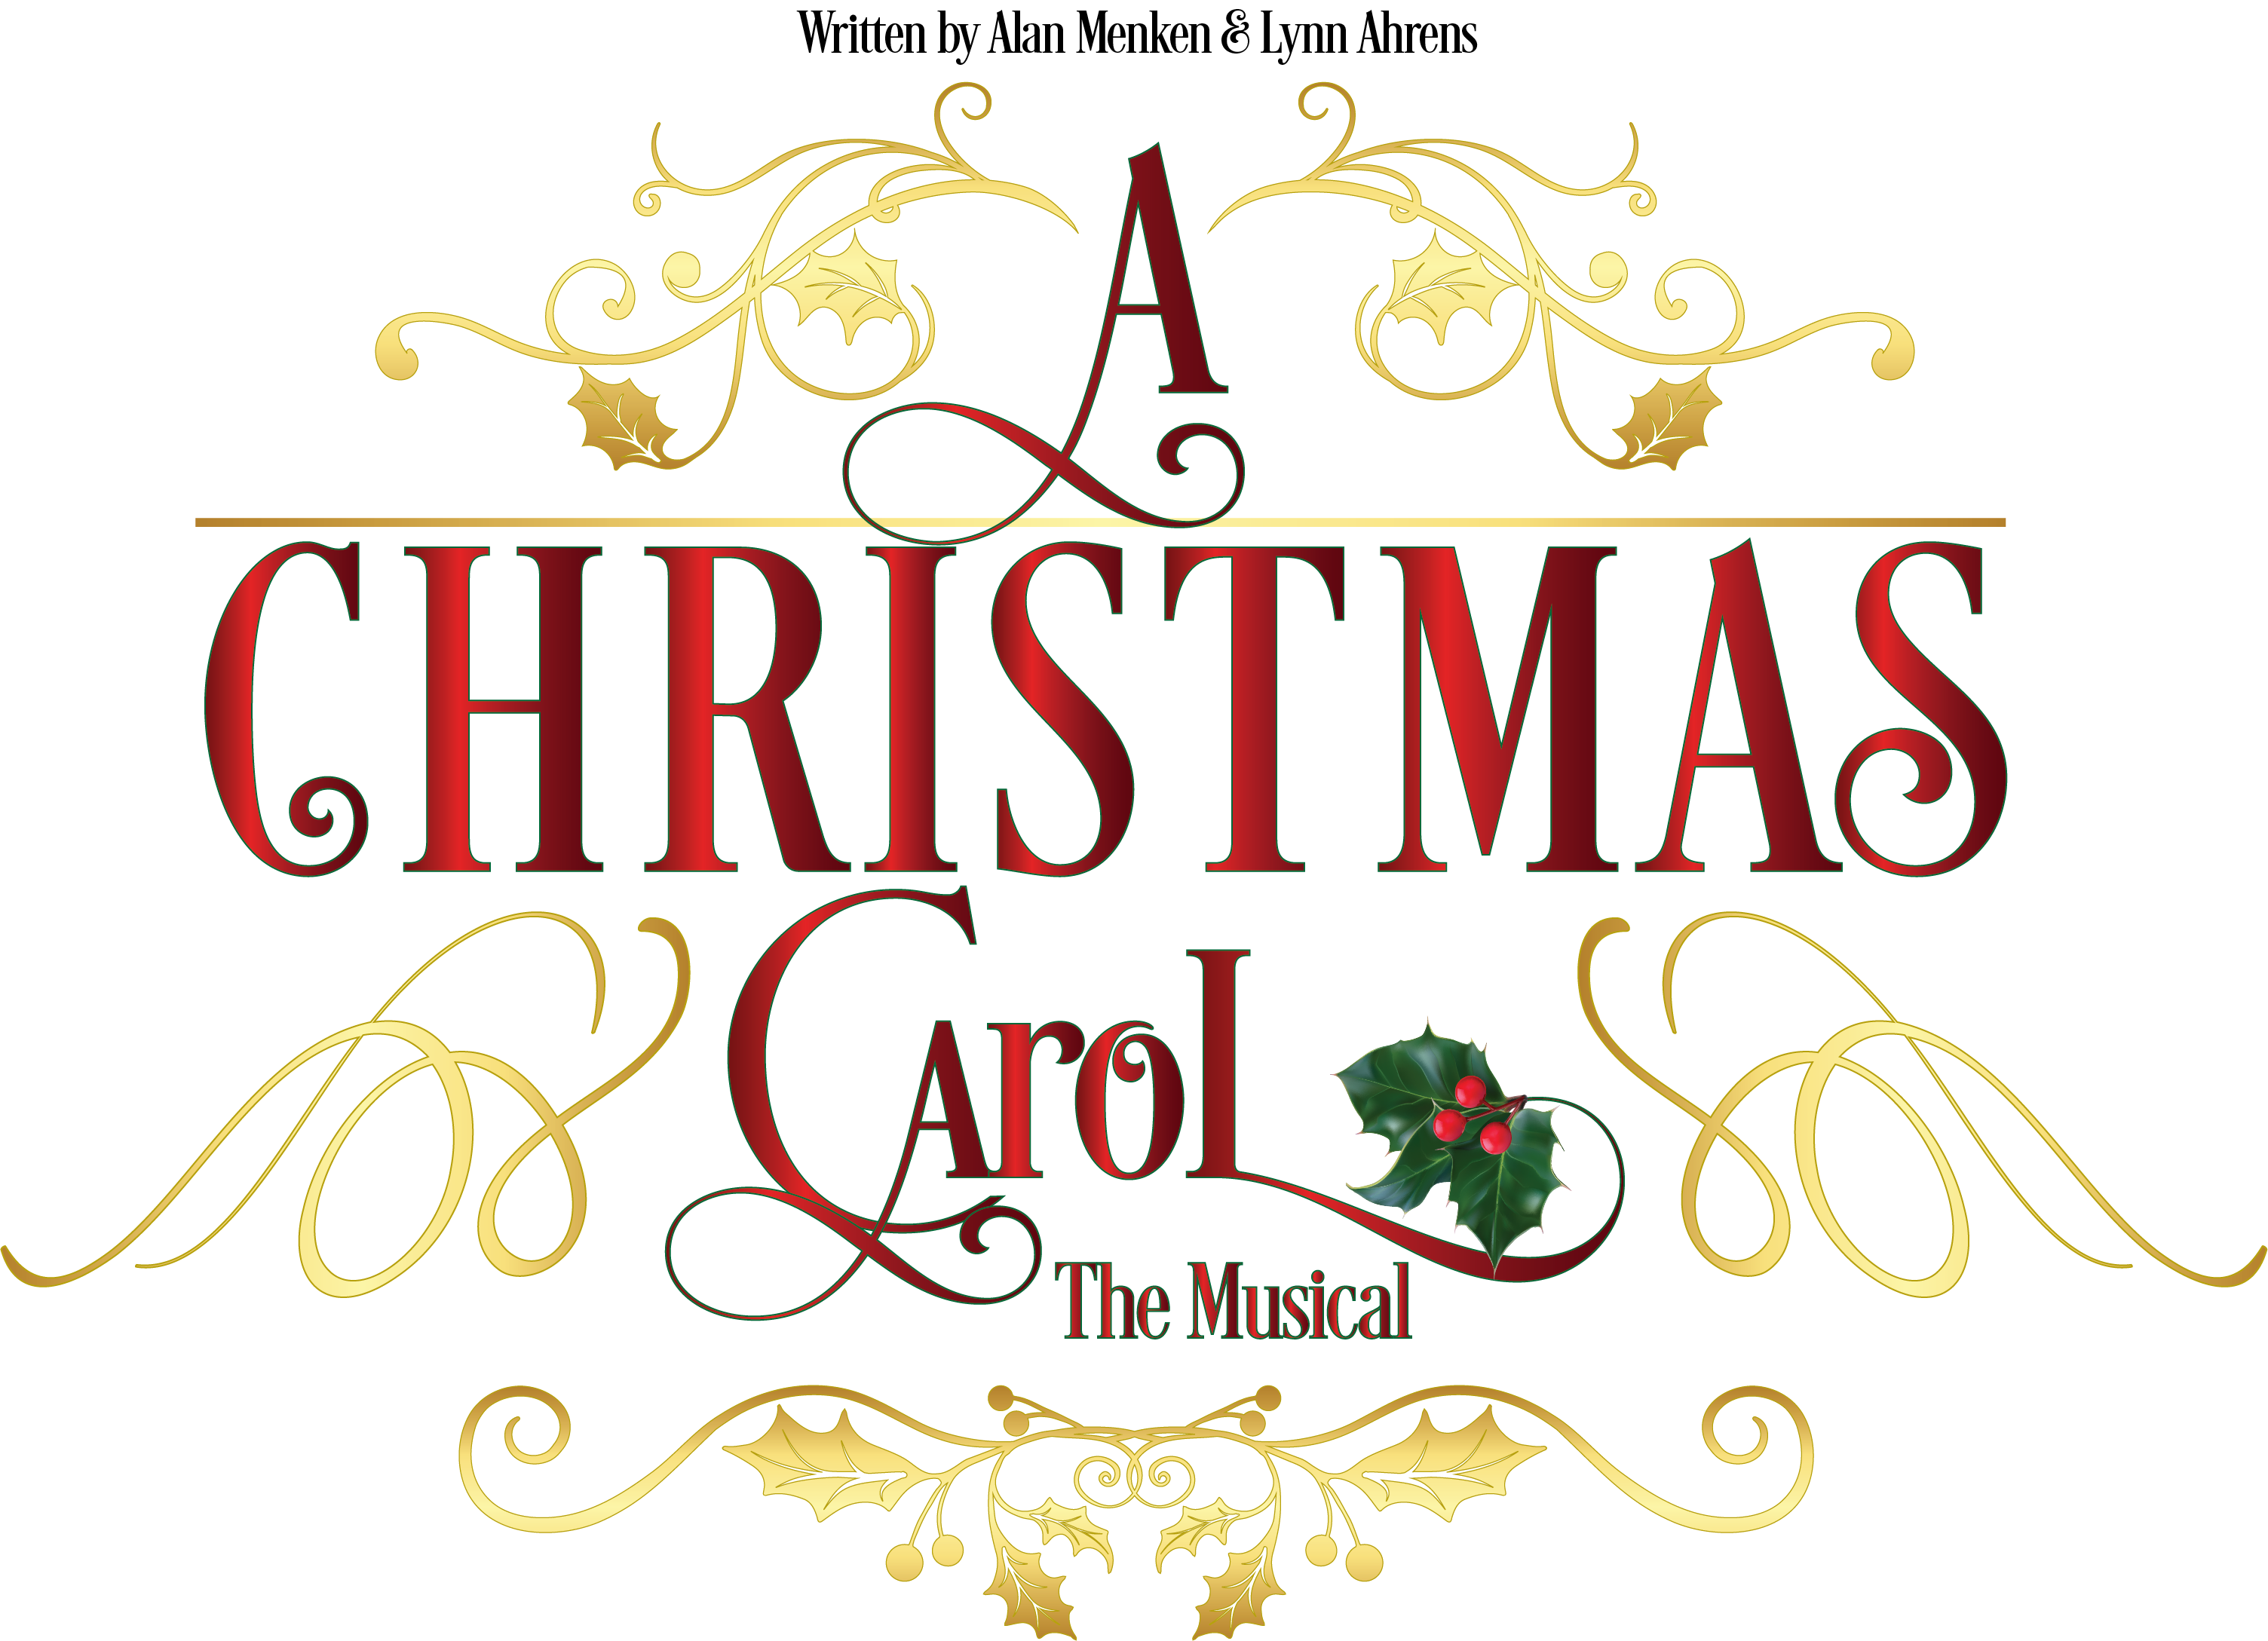 Christmas Carol Scrooge Clipart.A Christmas Carol The Musical Brightside Theatre